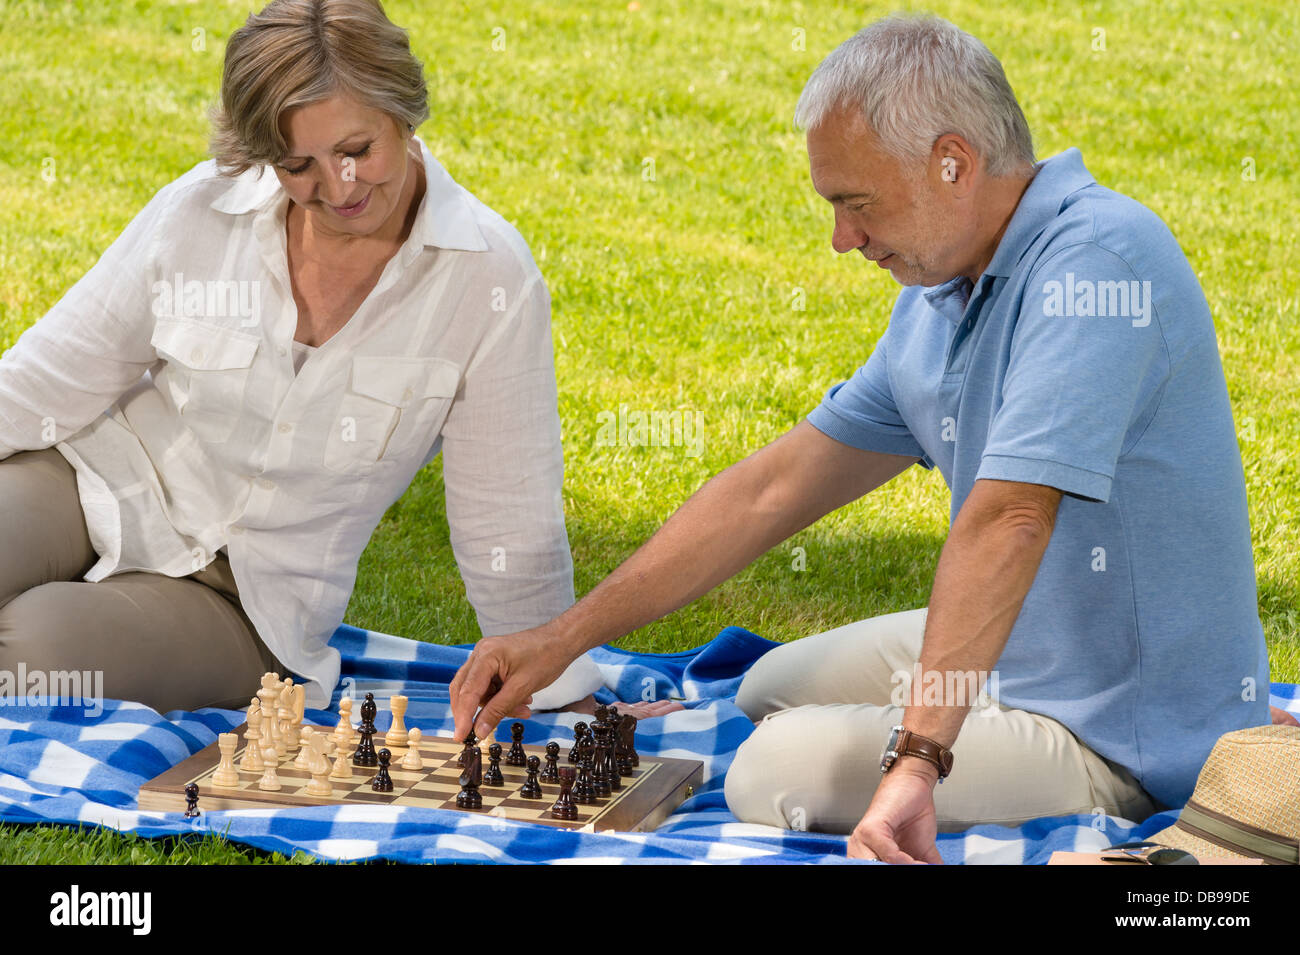 Retired senior couple playing chess in park sitting blanket grass - Stock Image